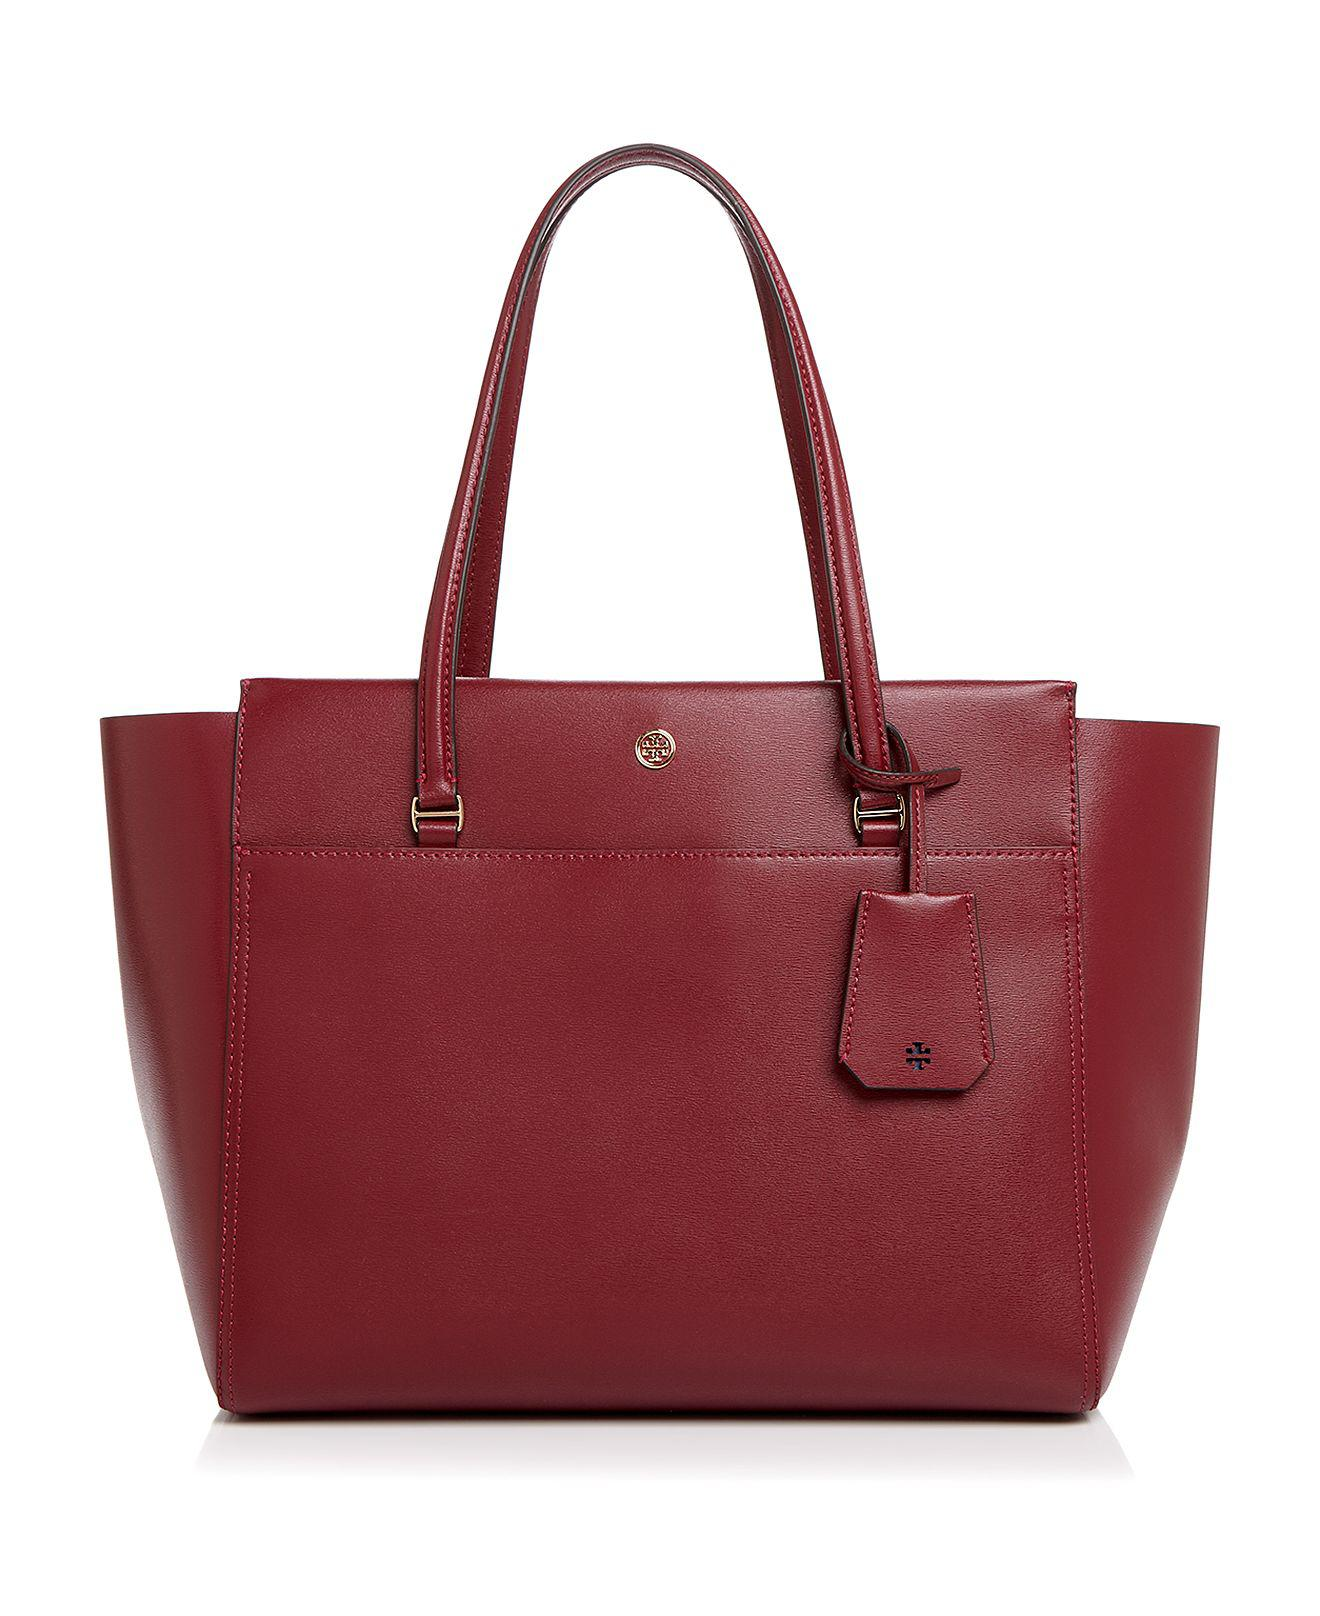 Michael Kors bags are all about simple, ladylike luxury. Working in materials from signature totes to jet set crossbody bags, Kors puts a creative twist on classic bag styles to create timeless staples.